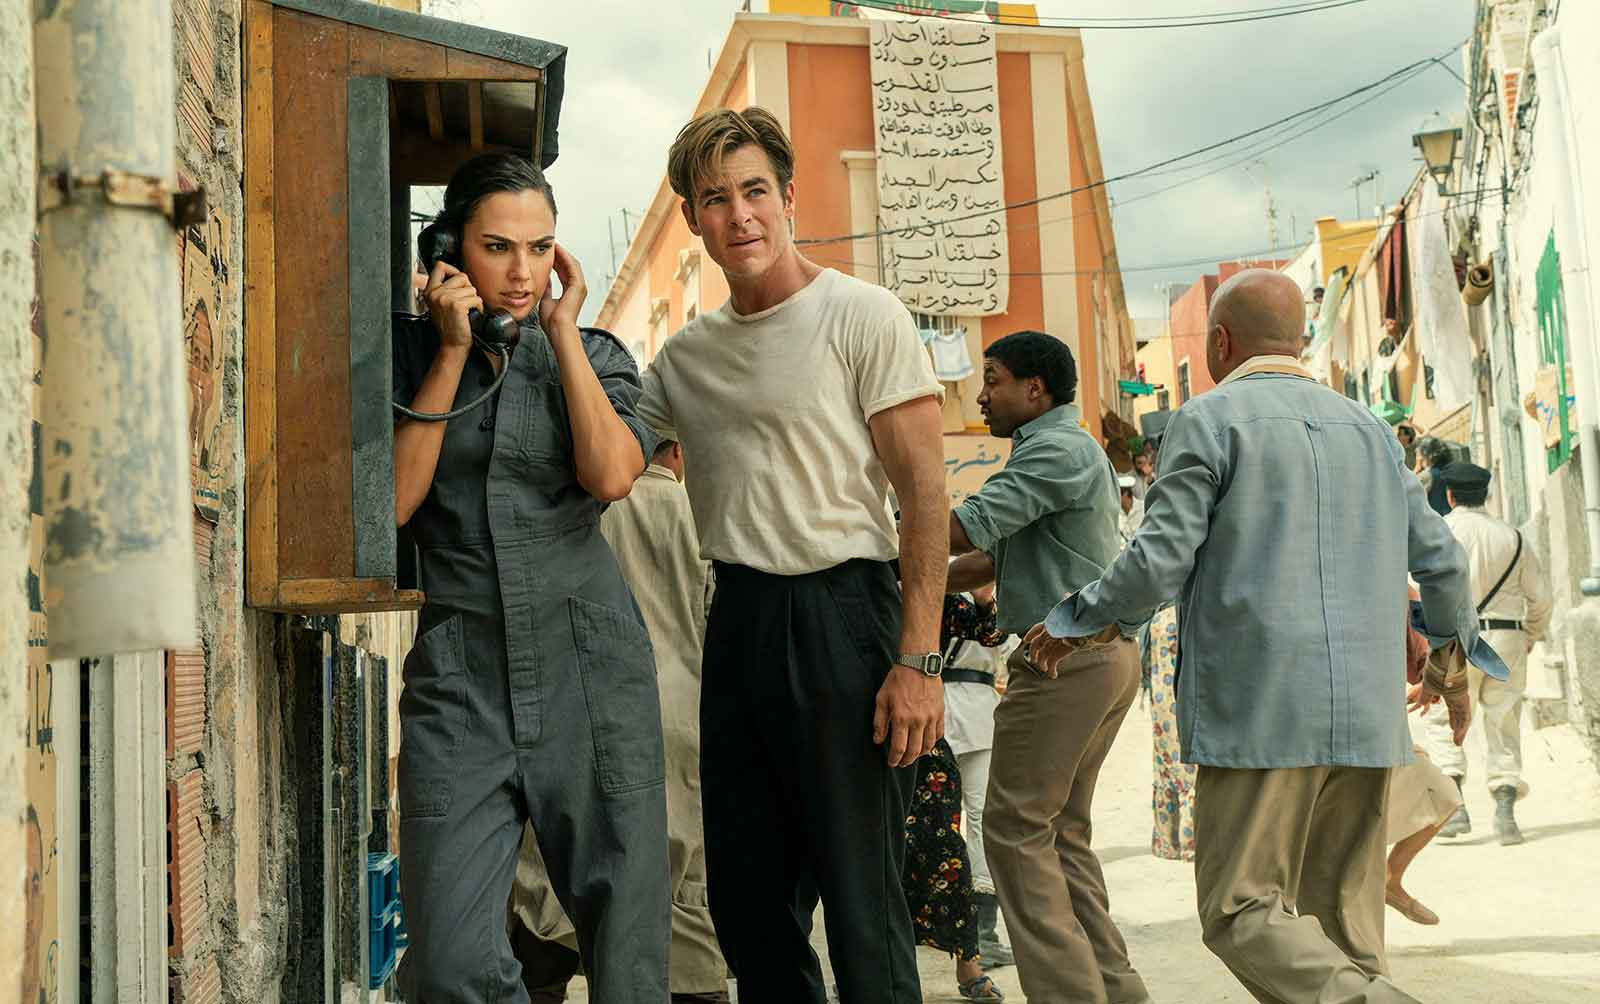 Gal Gadot y Chris Pine en un fotogram ade wonder woman 1984